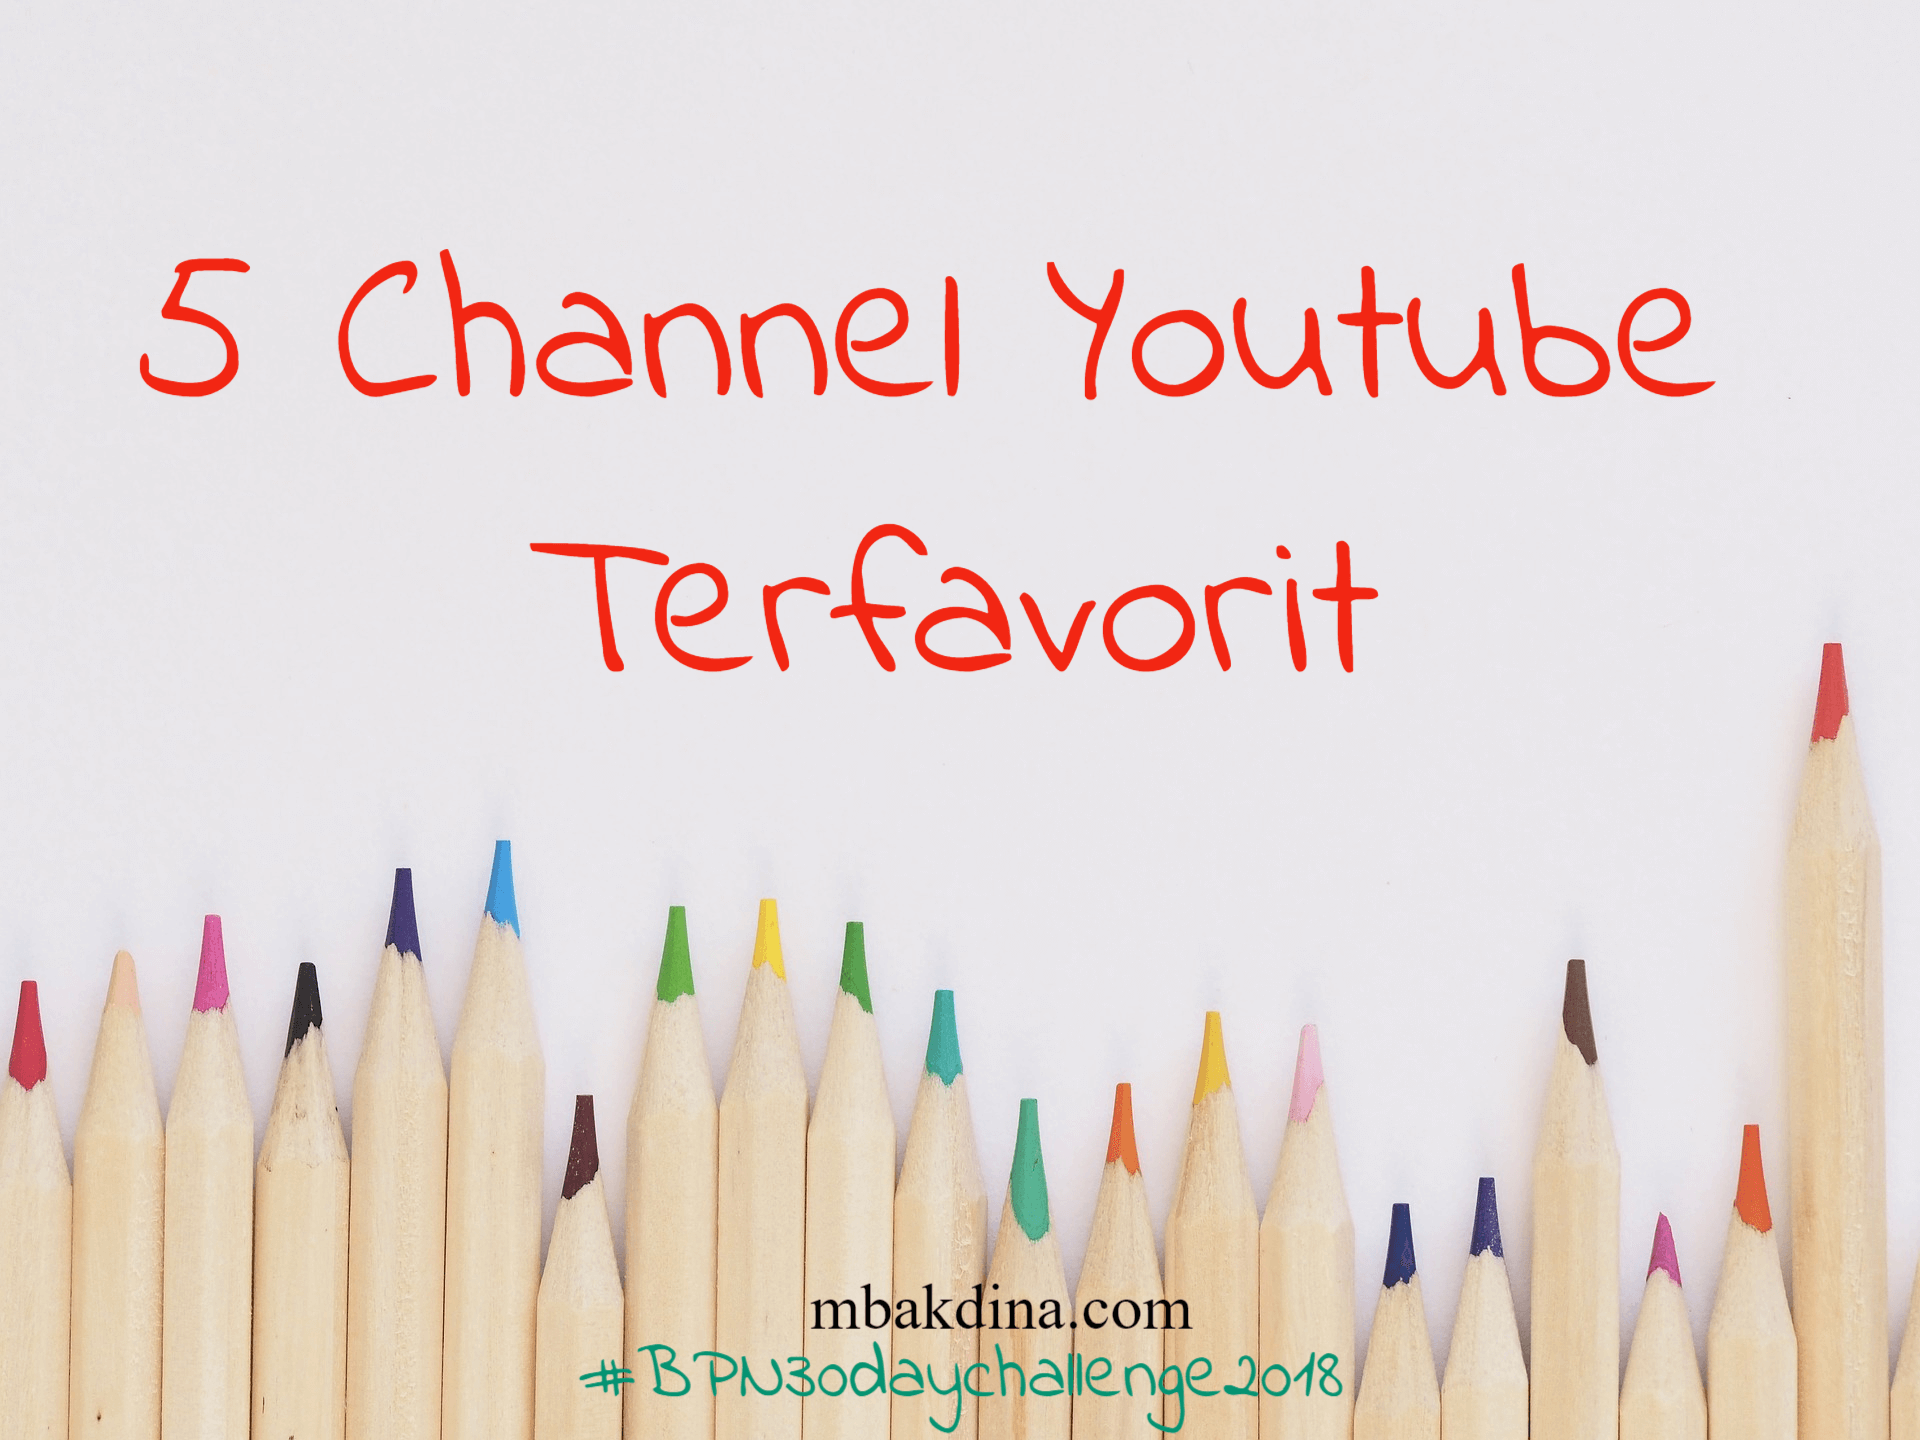 channel youtube favorit